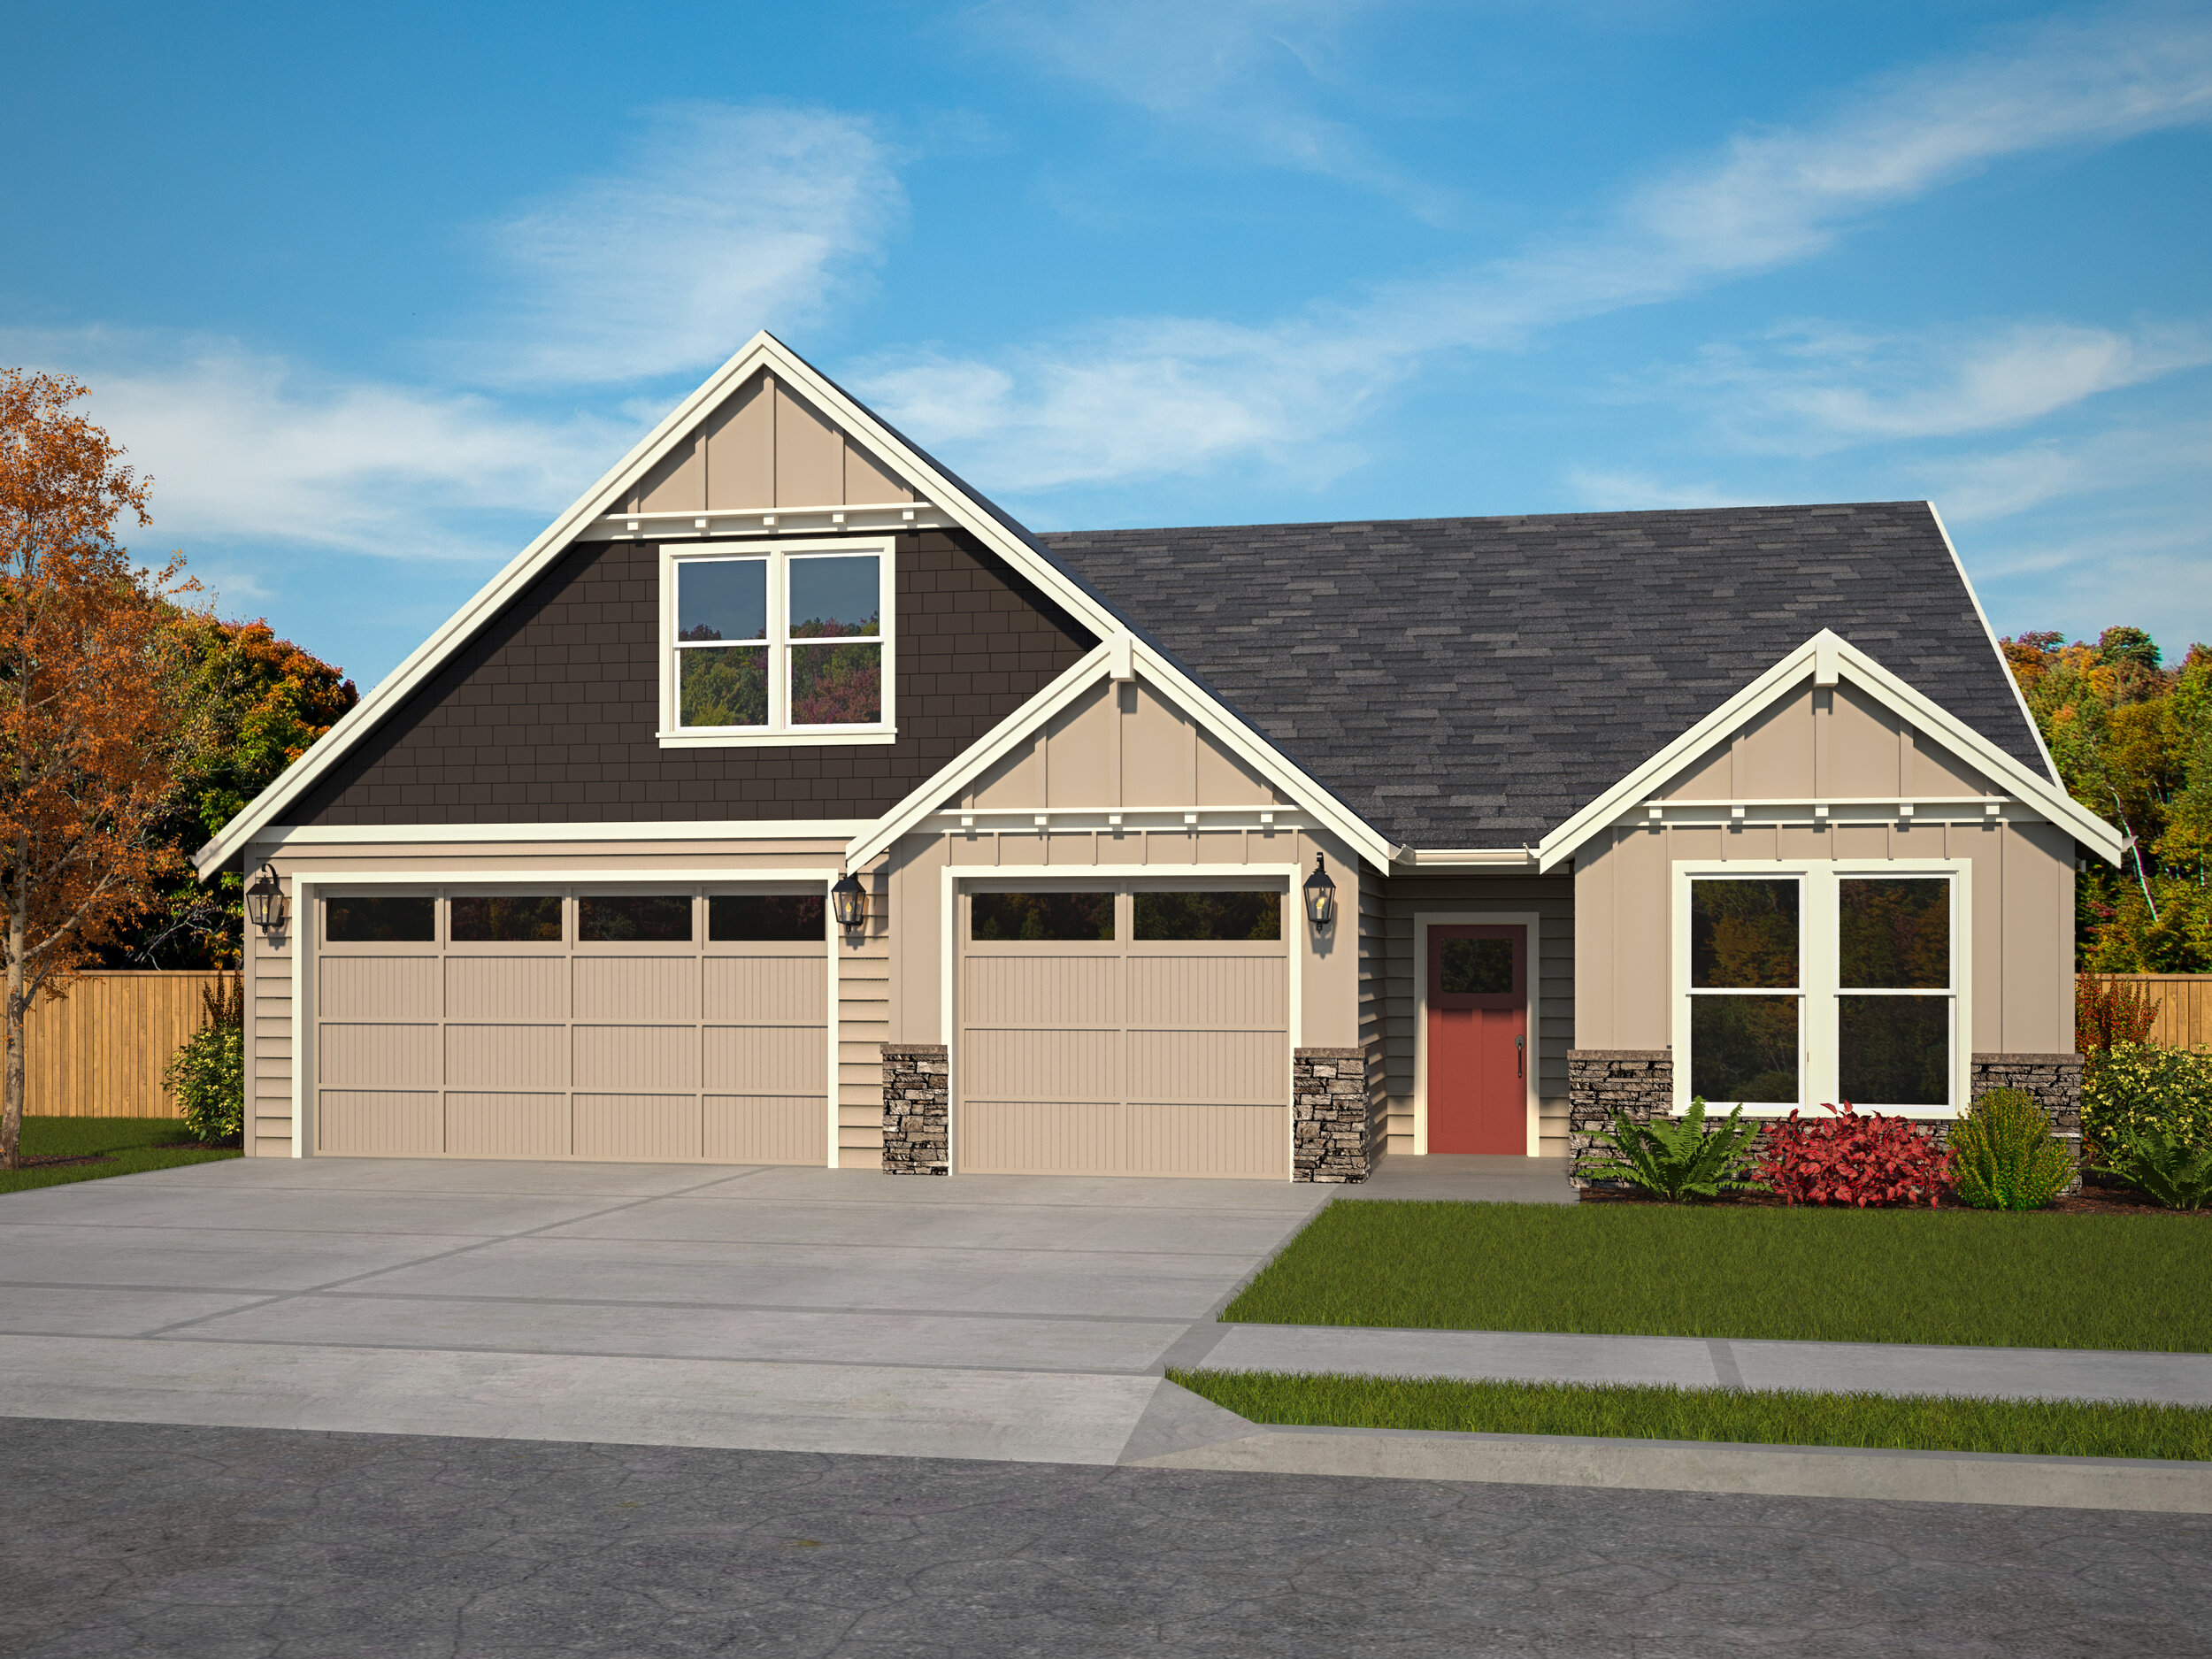 The 2425 B Elevation with 3 Car Garage